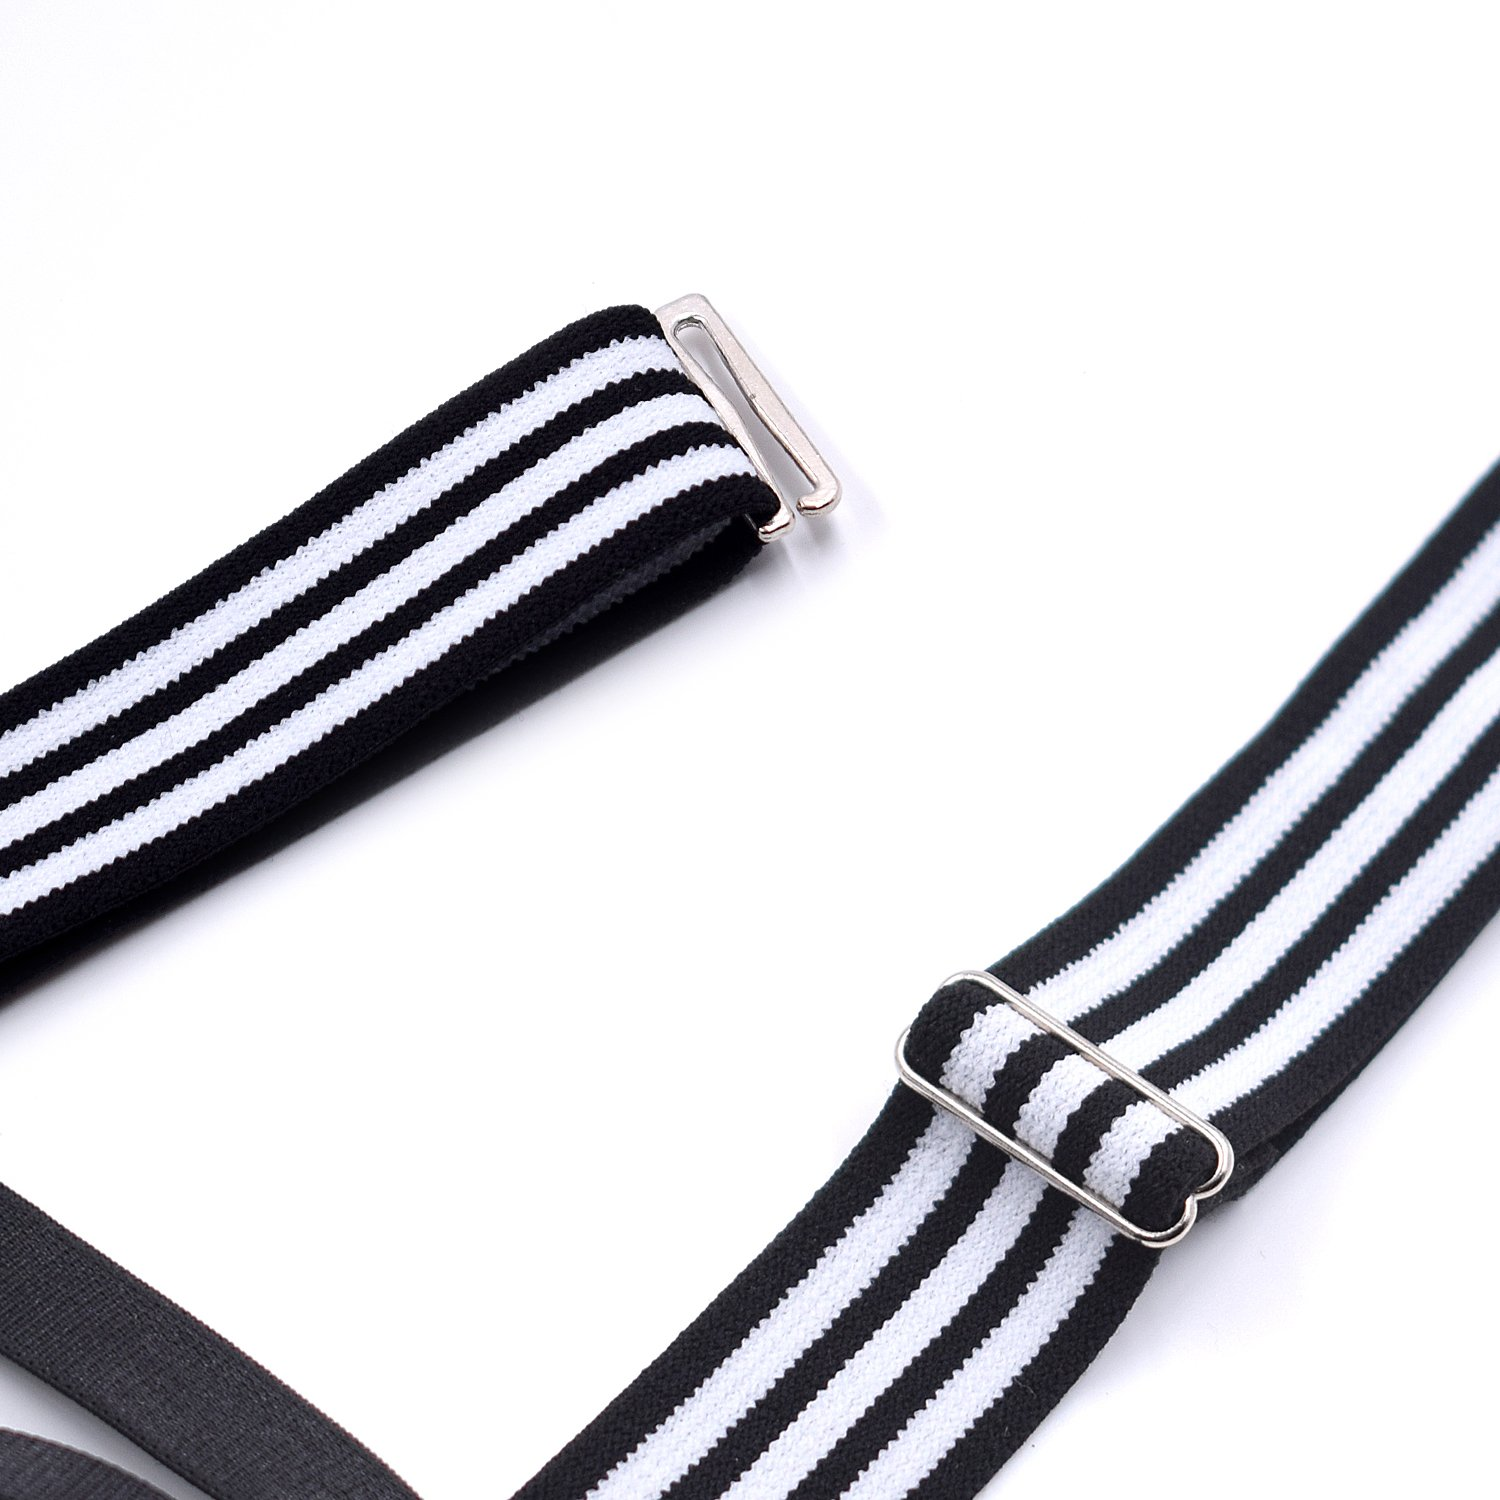 Mens Shirt Stays Garters Suspenders Shirt Holder Straps With 3 Non-slip Locking Clamps